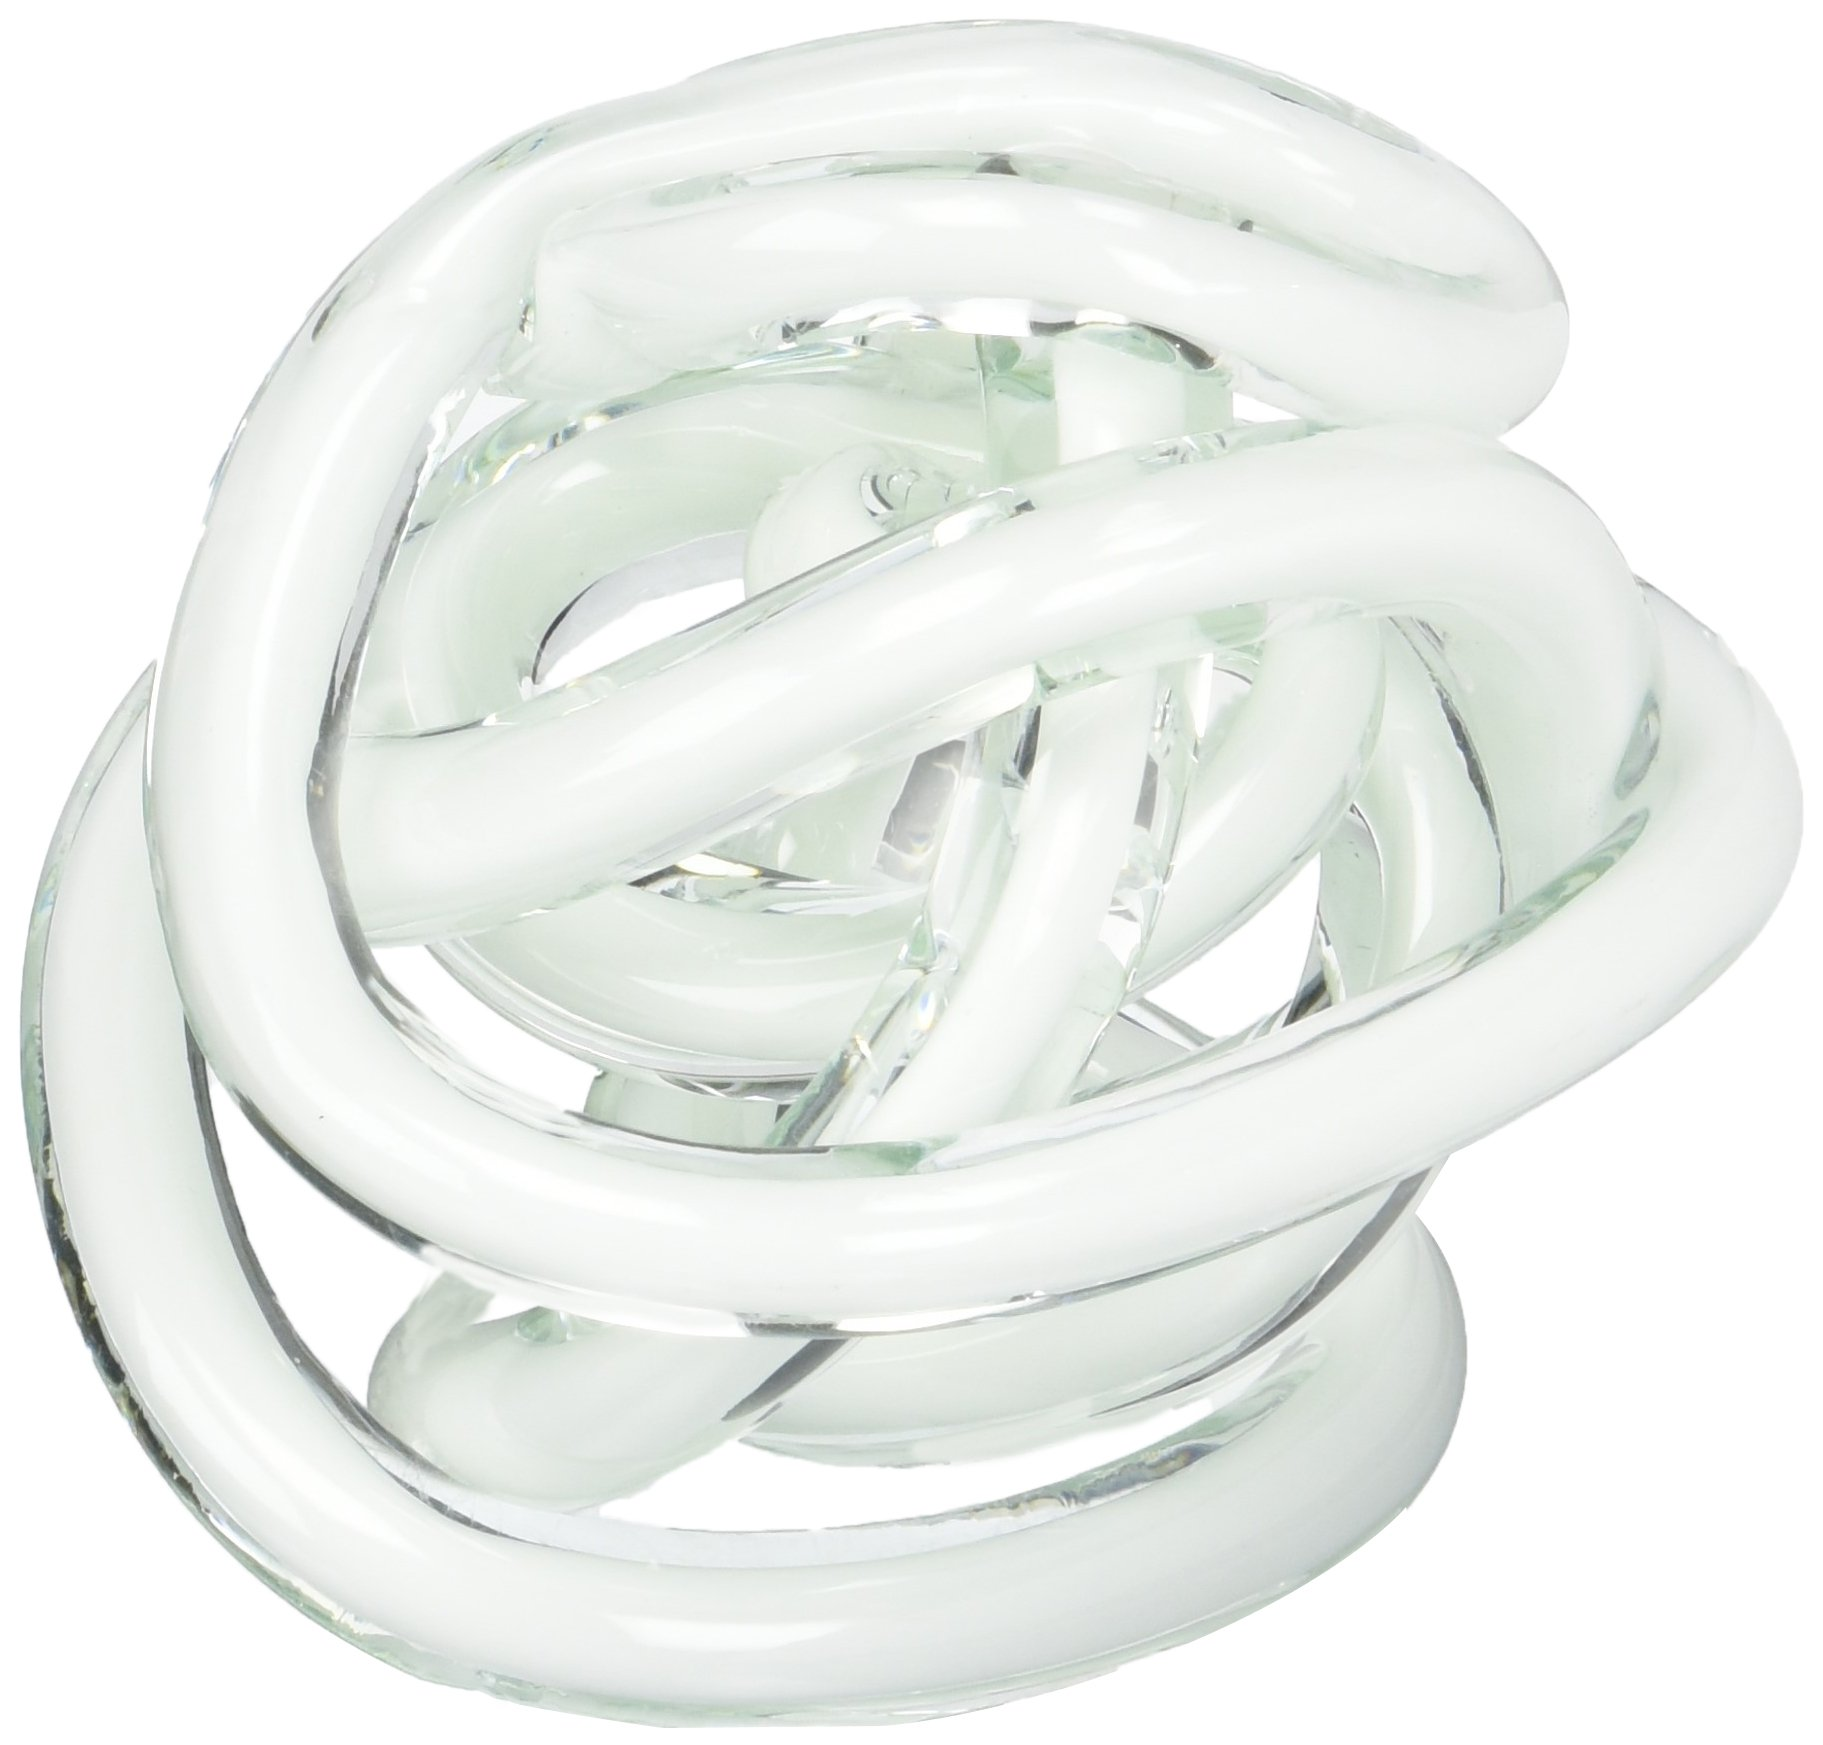 Torre & Tagus Orbit Glass Décor Ball, Small, White by Torre & Tagus